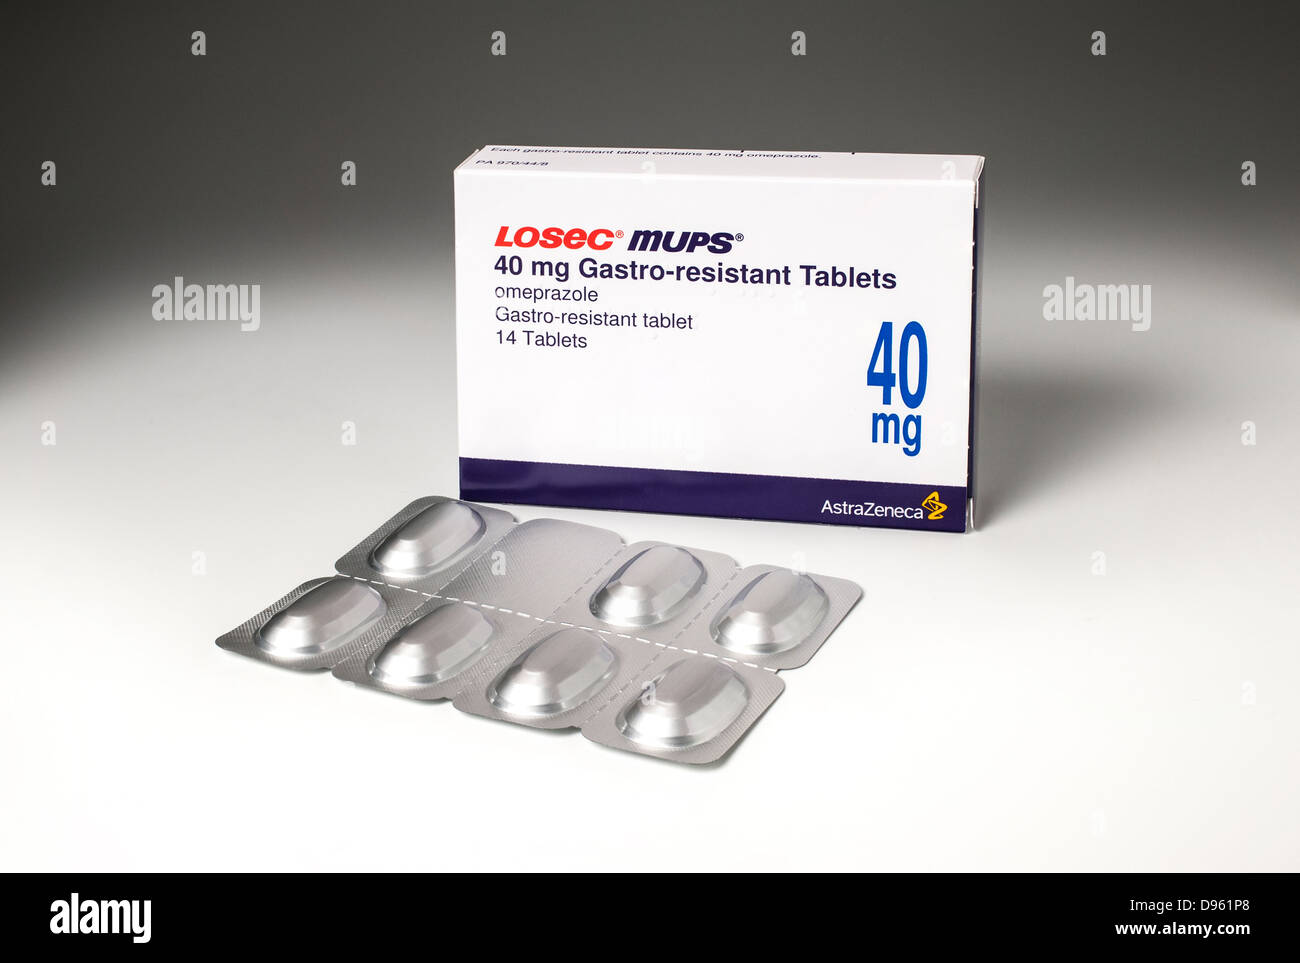 Losec tablets - Omeprazole medications proton pump inhibitors slows or prevents the production of stomach acid - Stock Image